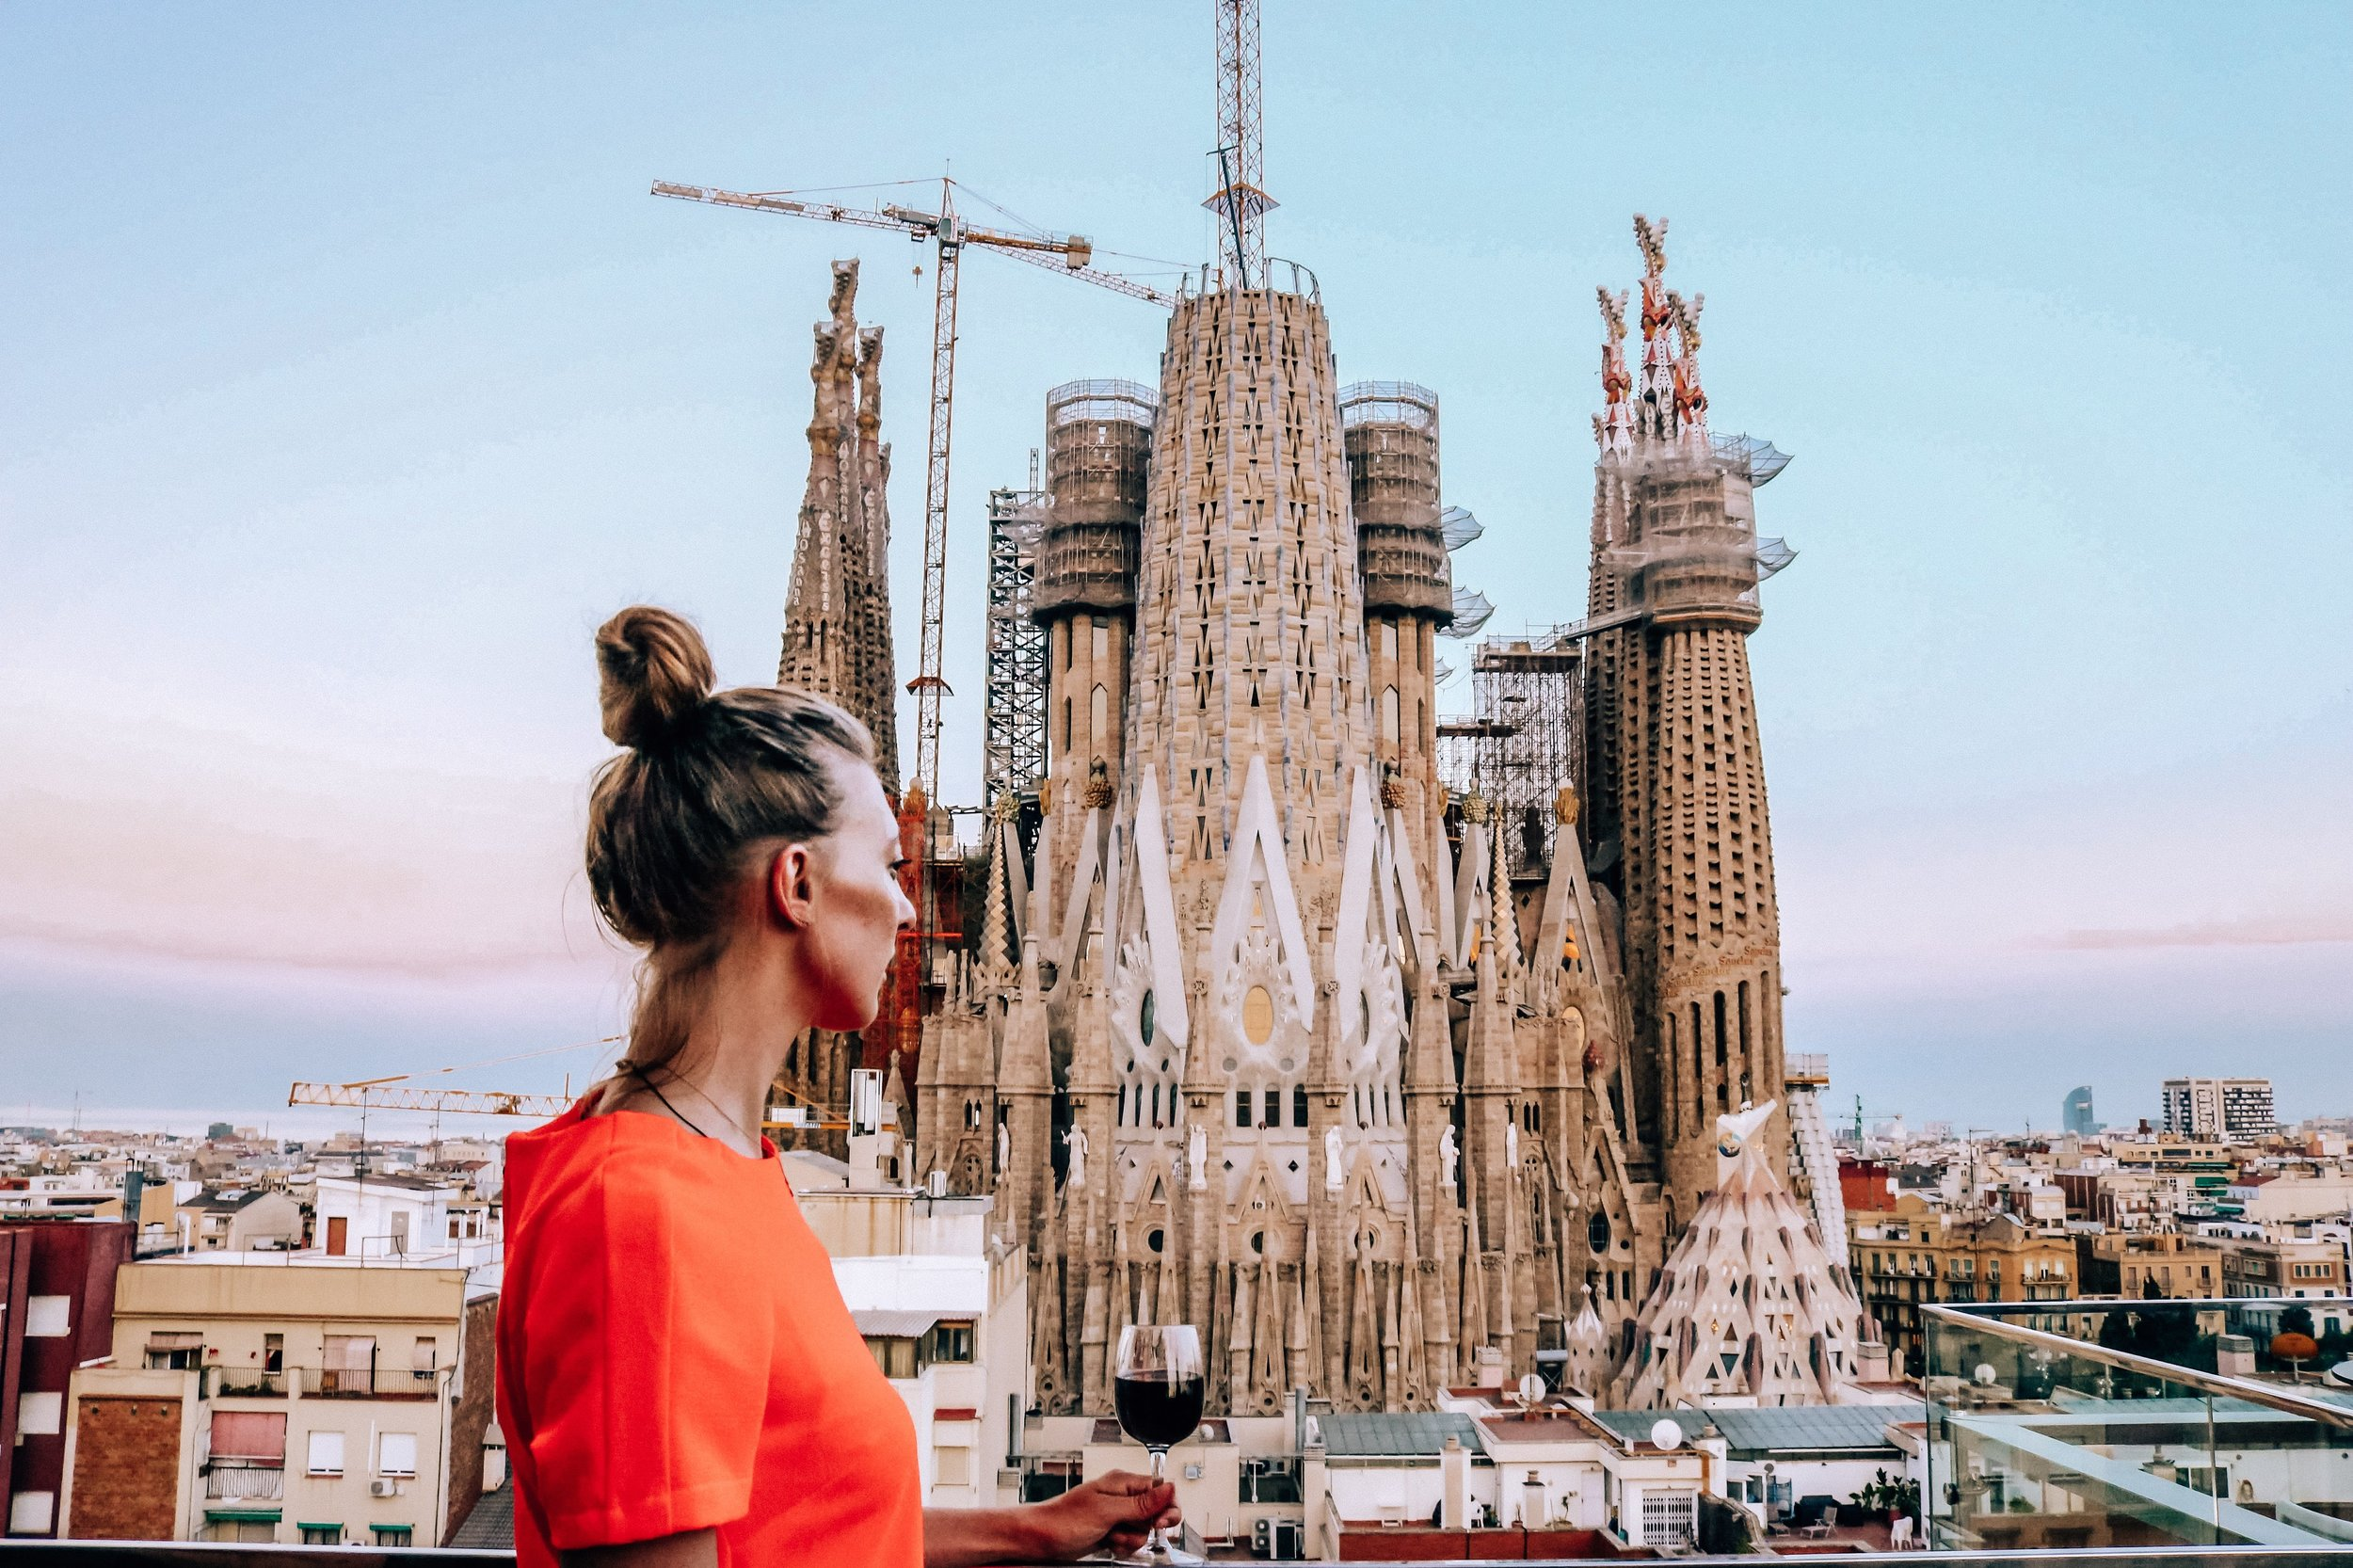 Rooftop views of La Sagrada Familia Barcelona